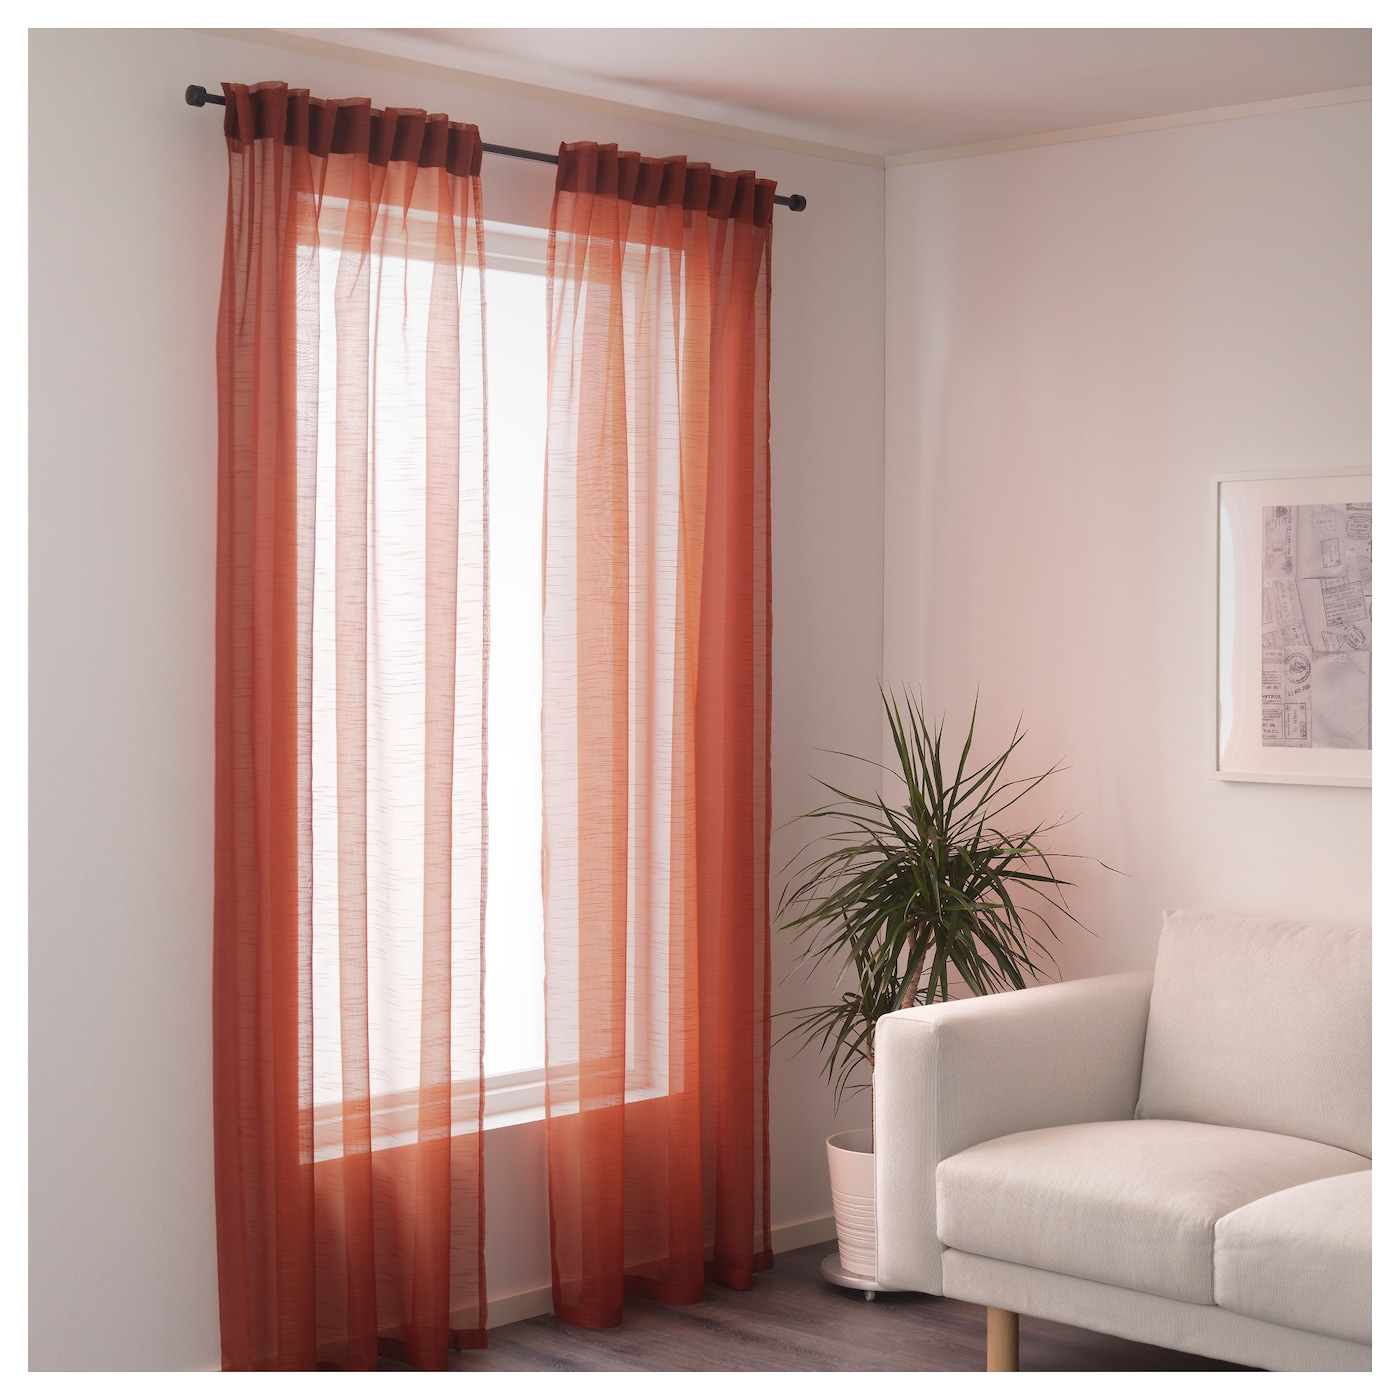 Ikea gjertrud sheer curtains 1 pair the curtains can be used on a curtain rod